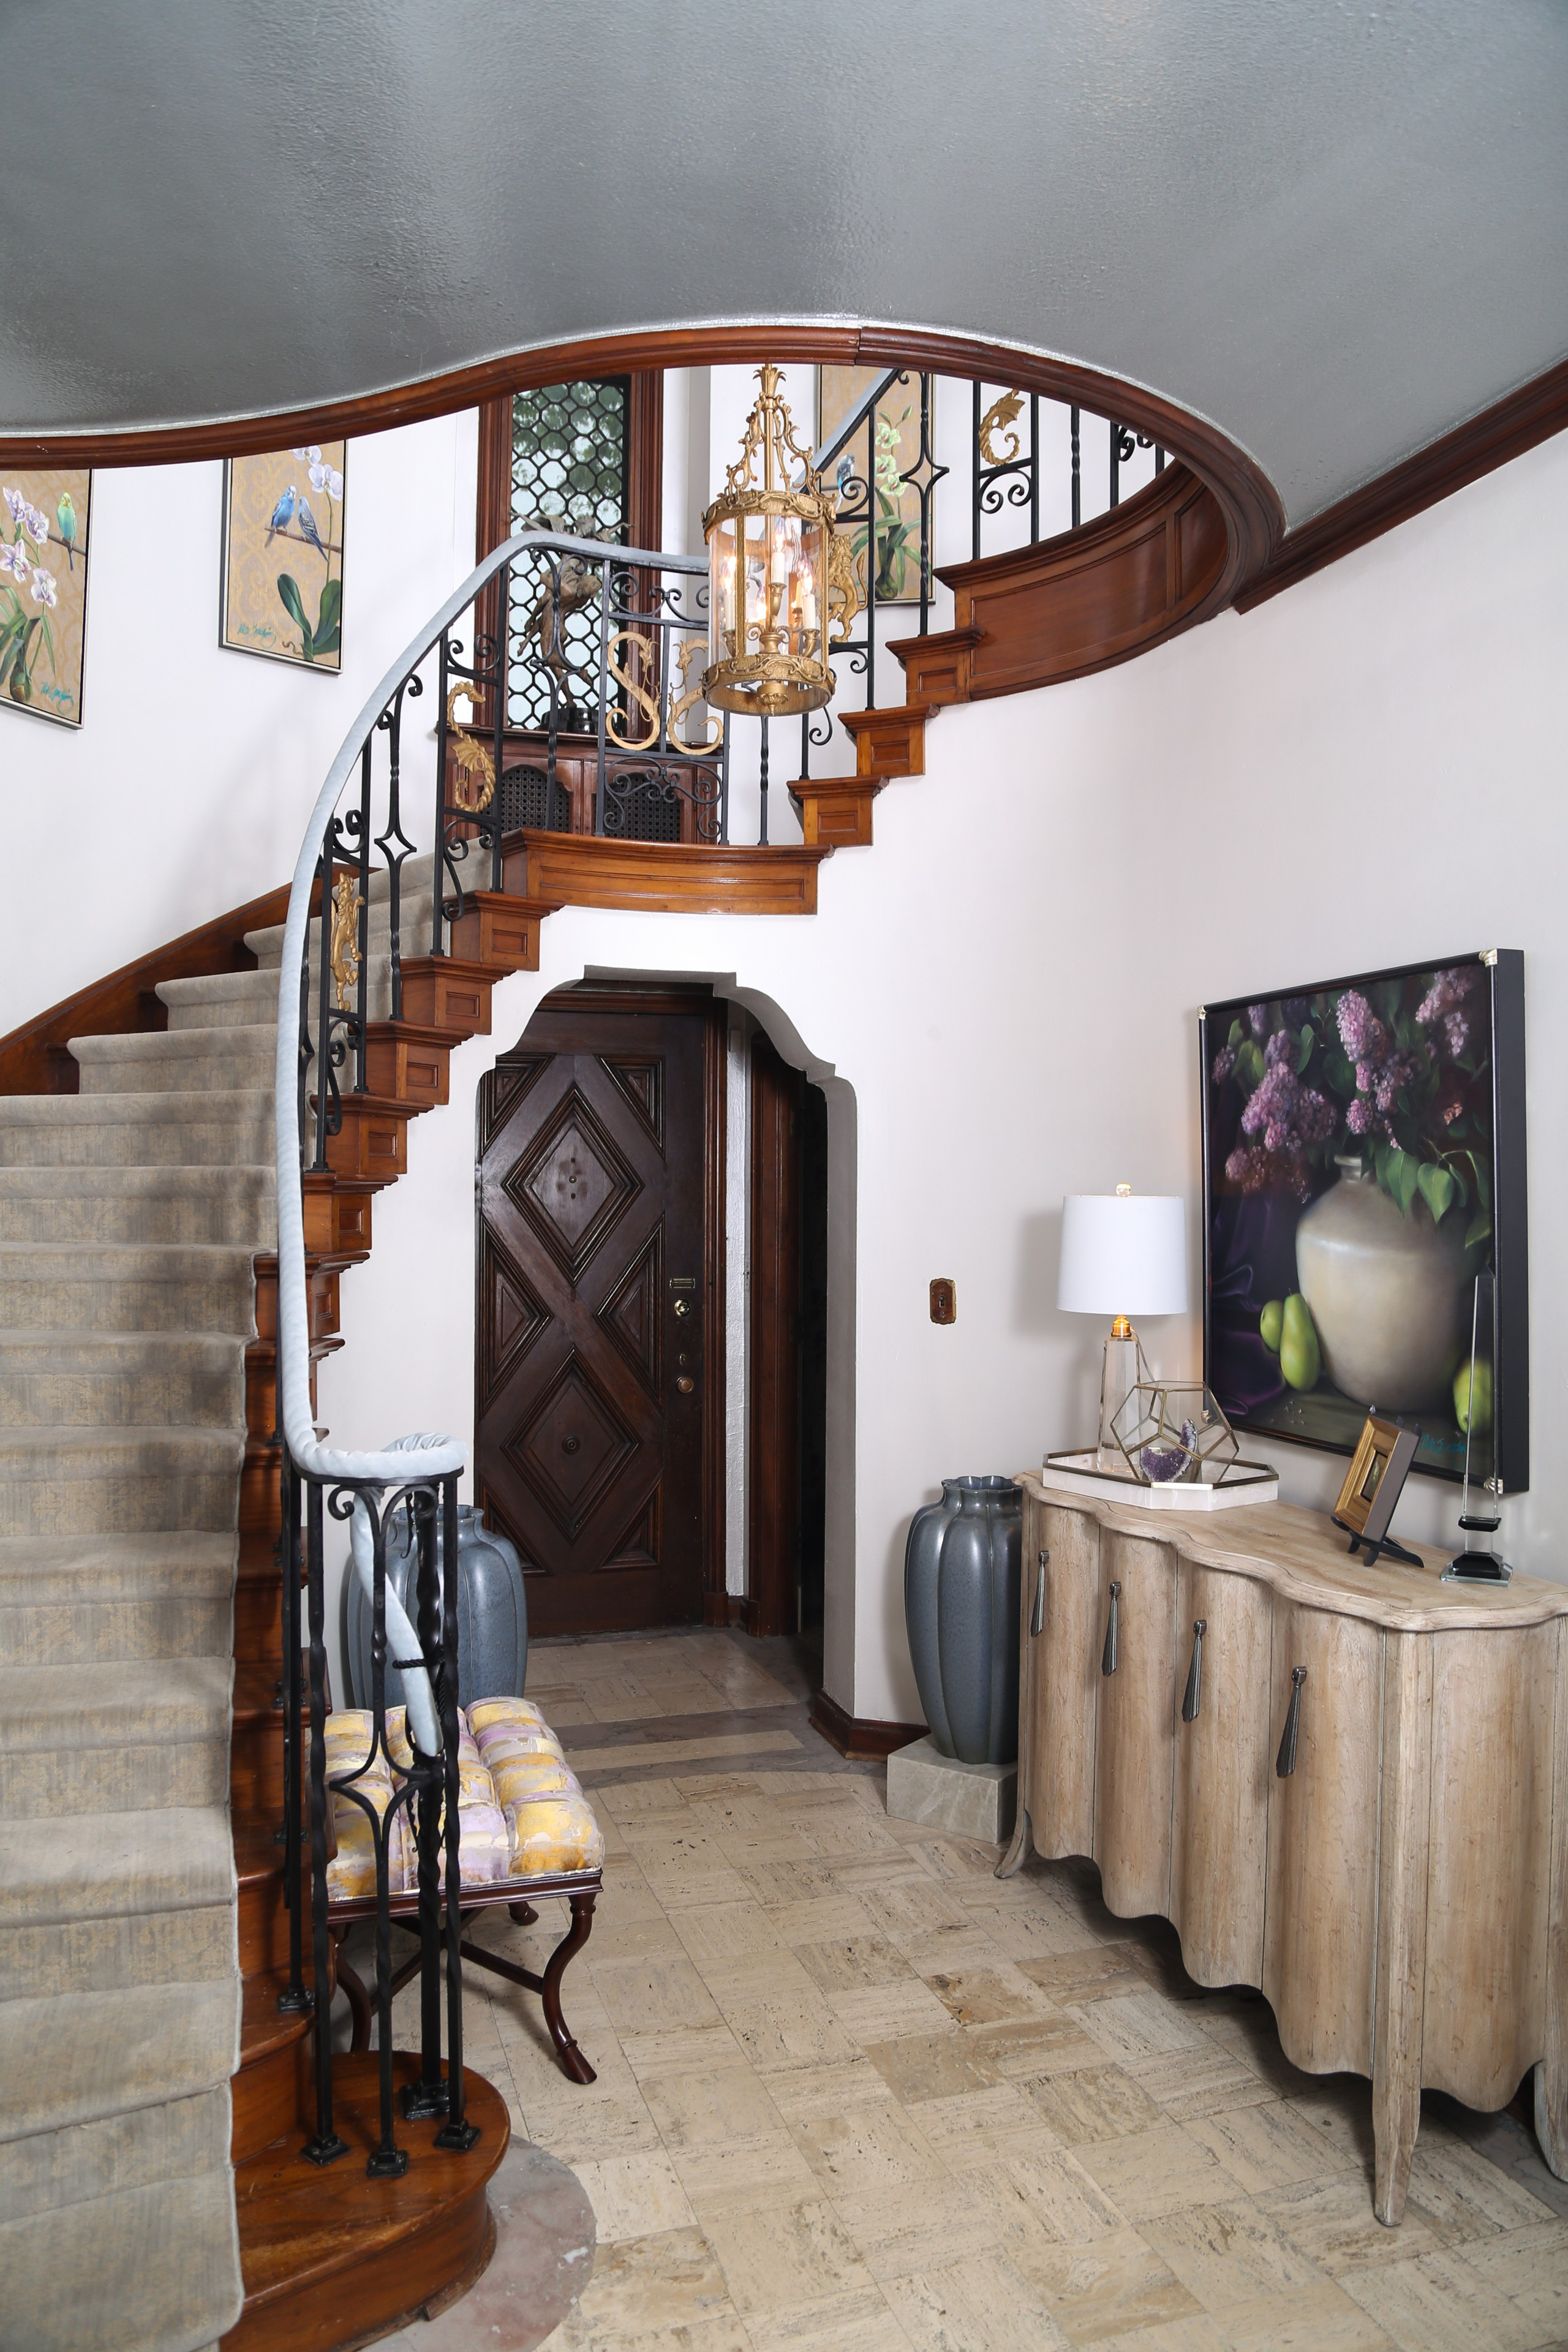 French provincial Decorator Showhouse Entry